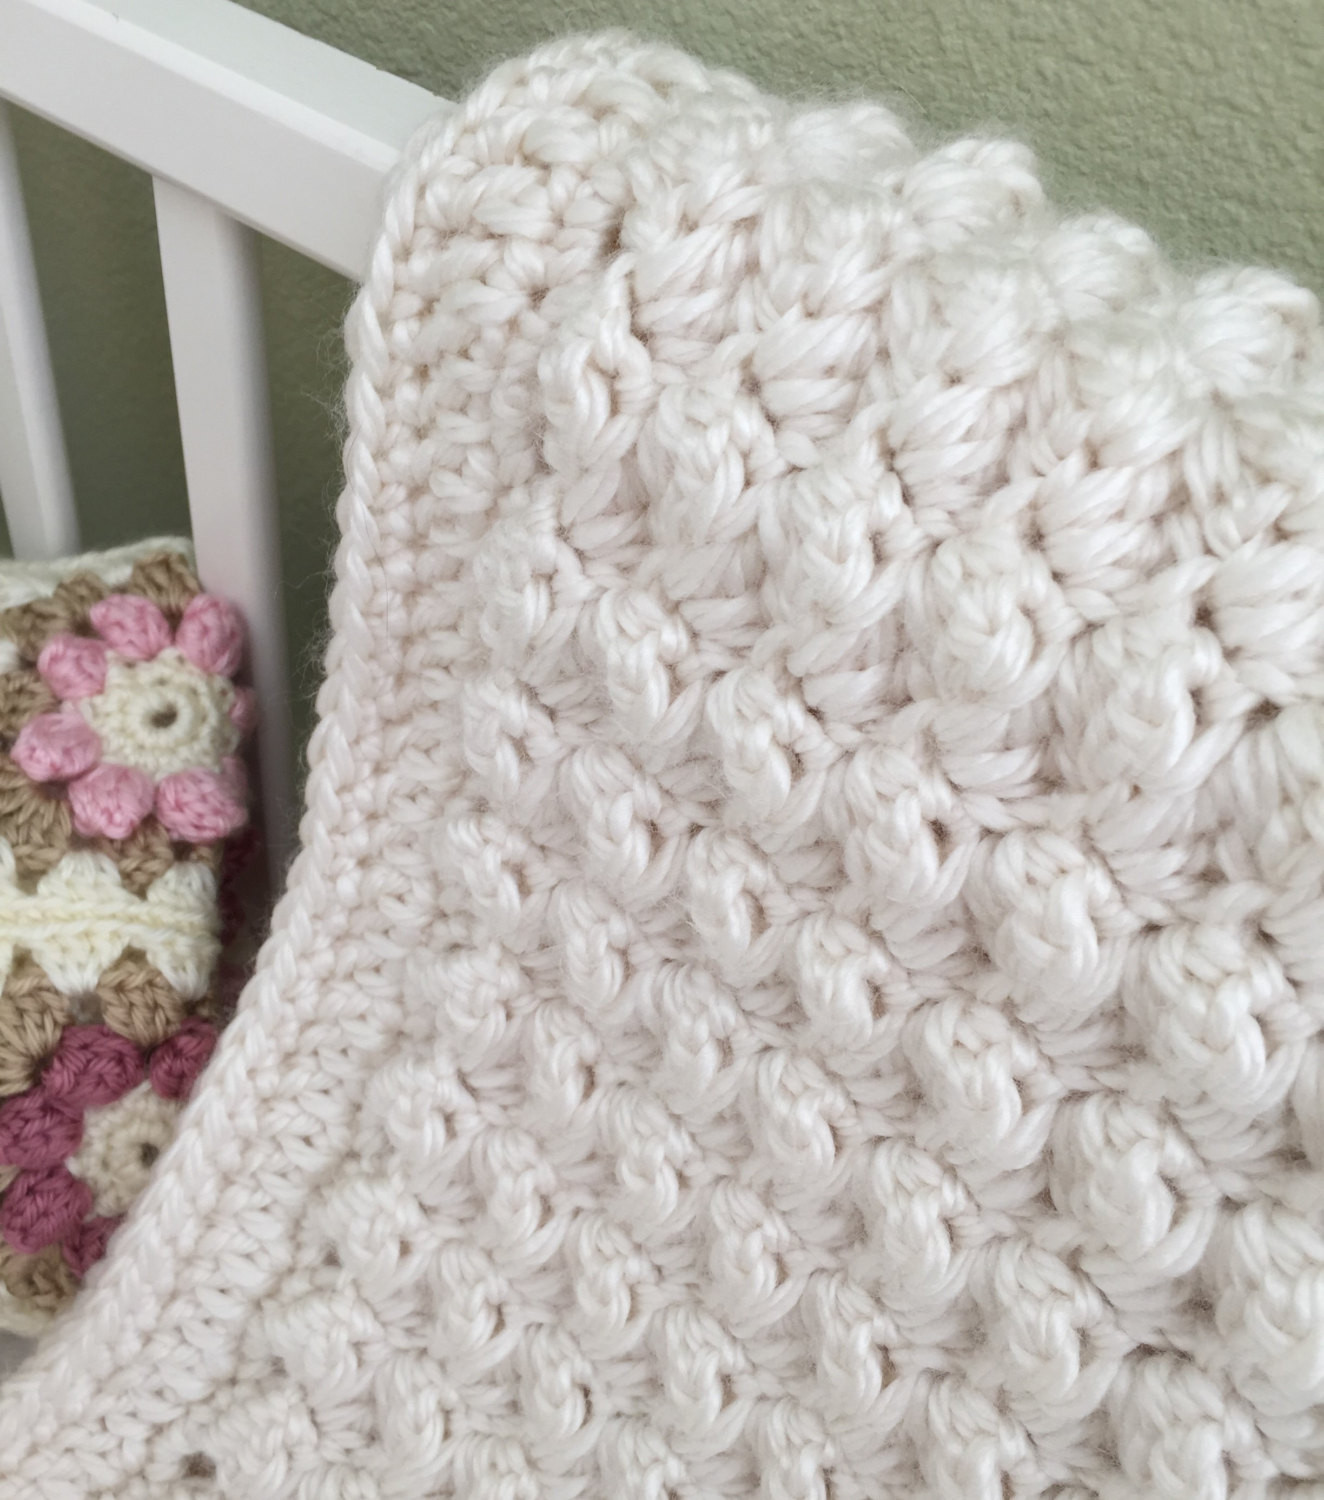 Chunky Yarn Crochet Patterns New Crochet Baby Blanket Pattern Chunky Crochet Baby Blanket Of Amazing 46 Photos Chunky Yarn Crochet Patterns